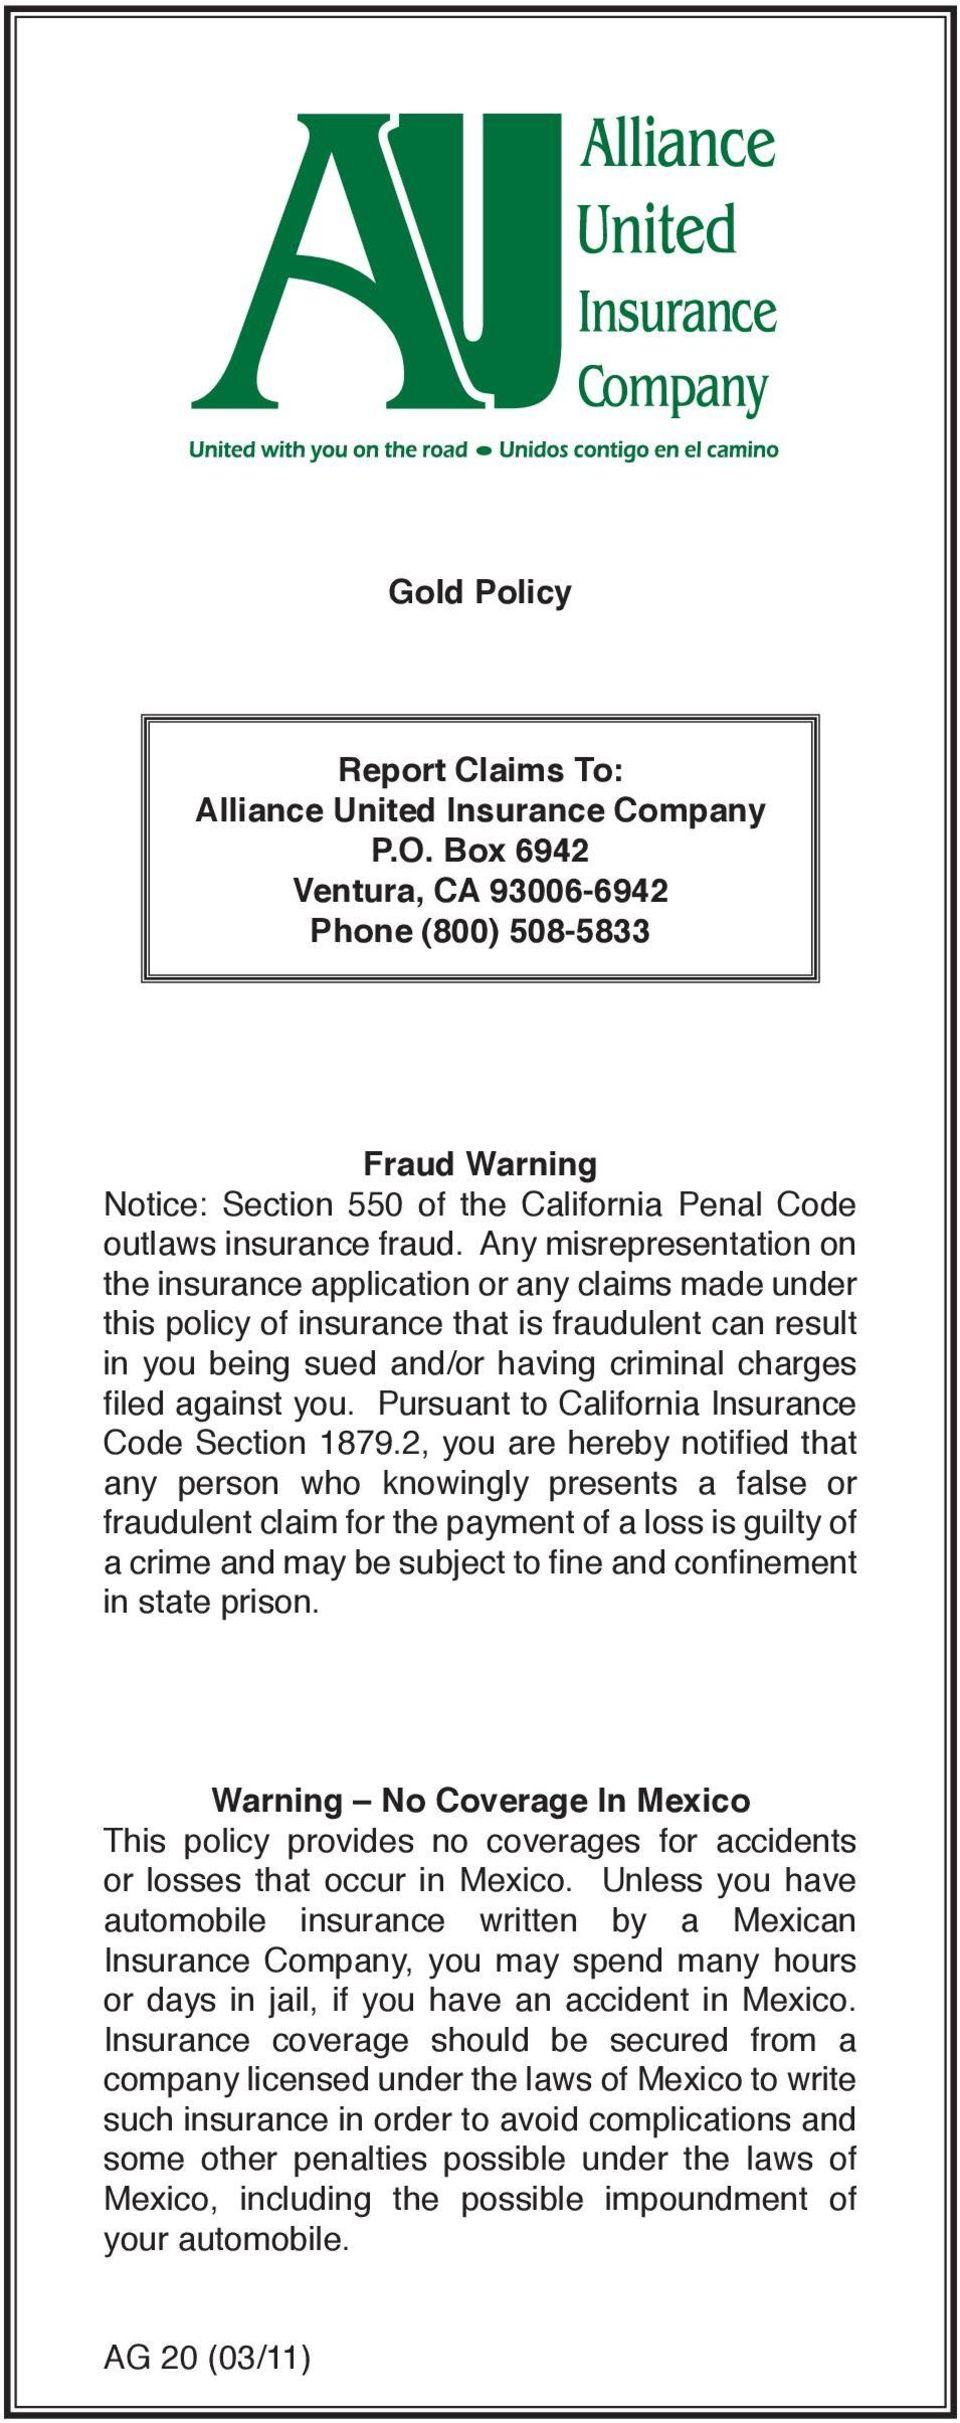 Any misrepresentation on the insurance application or any claims made under this policy of insurance that is fraudulent can result in you being sued and/or having criminal charges filed against you.